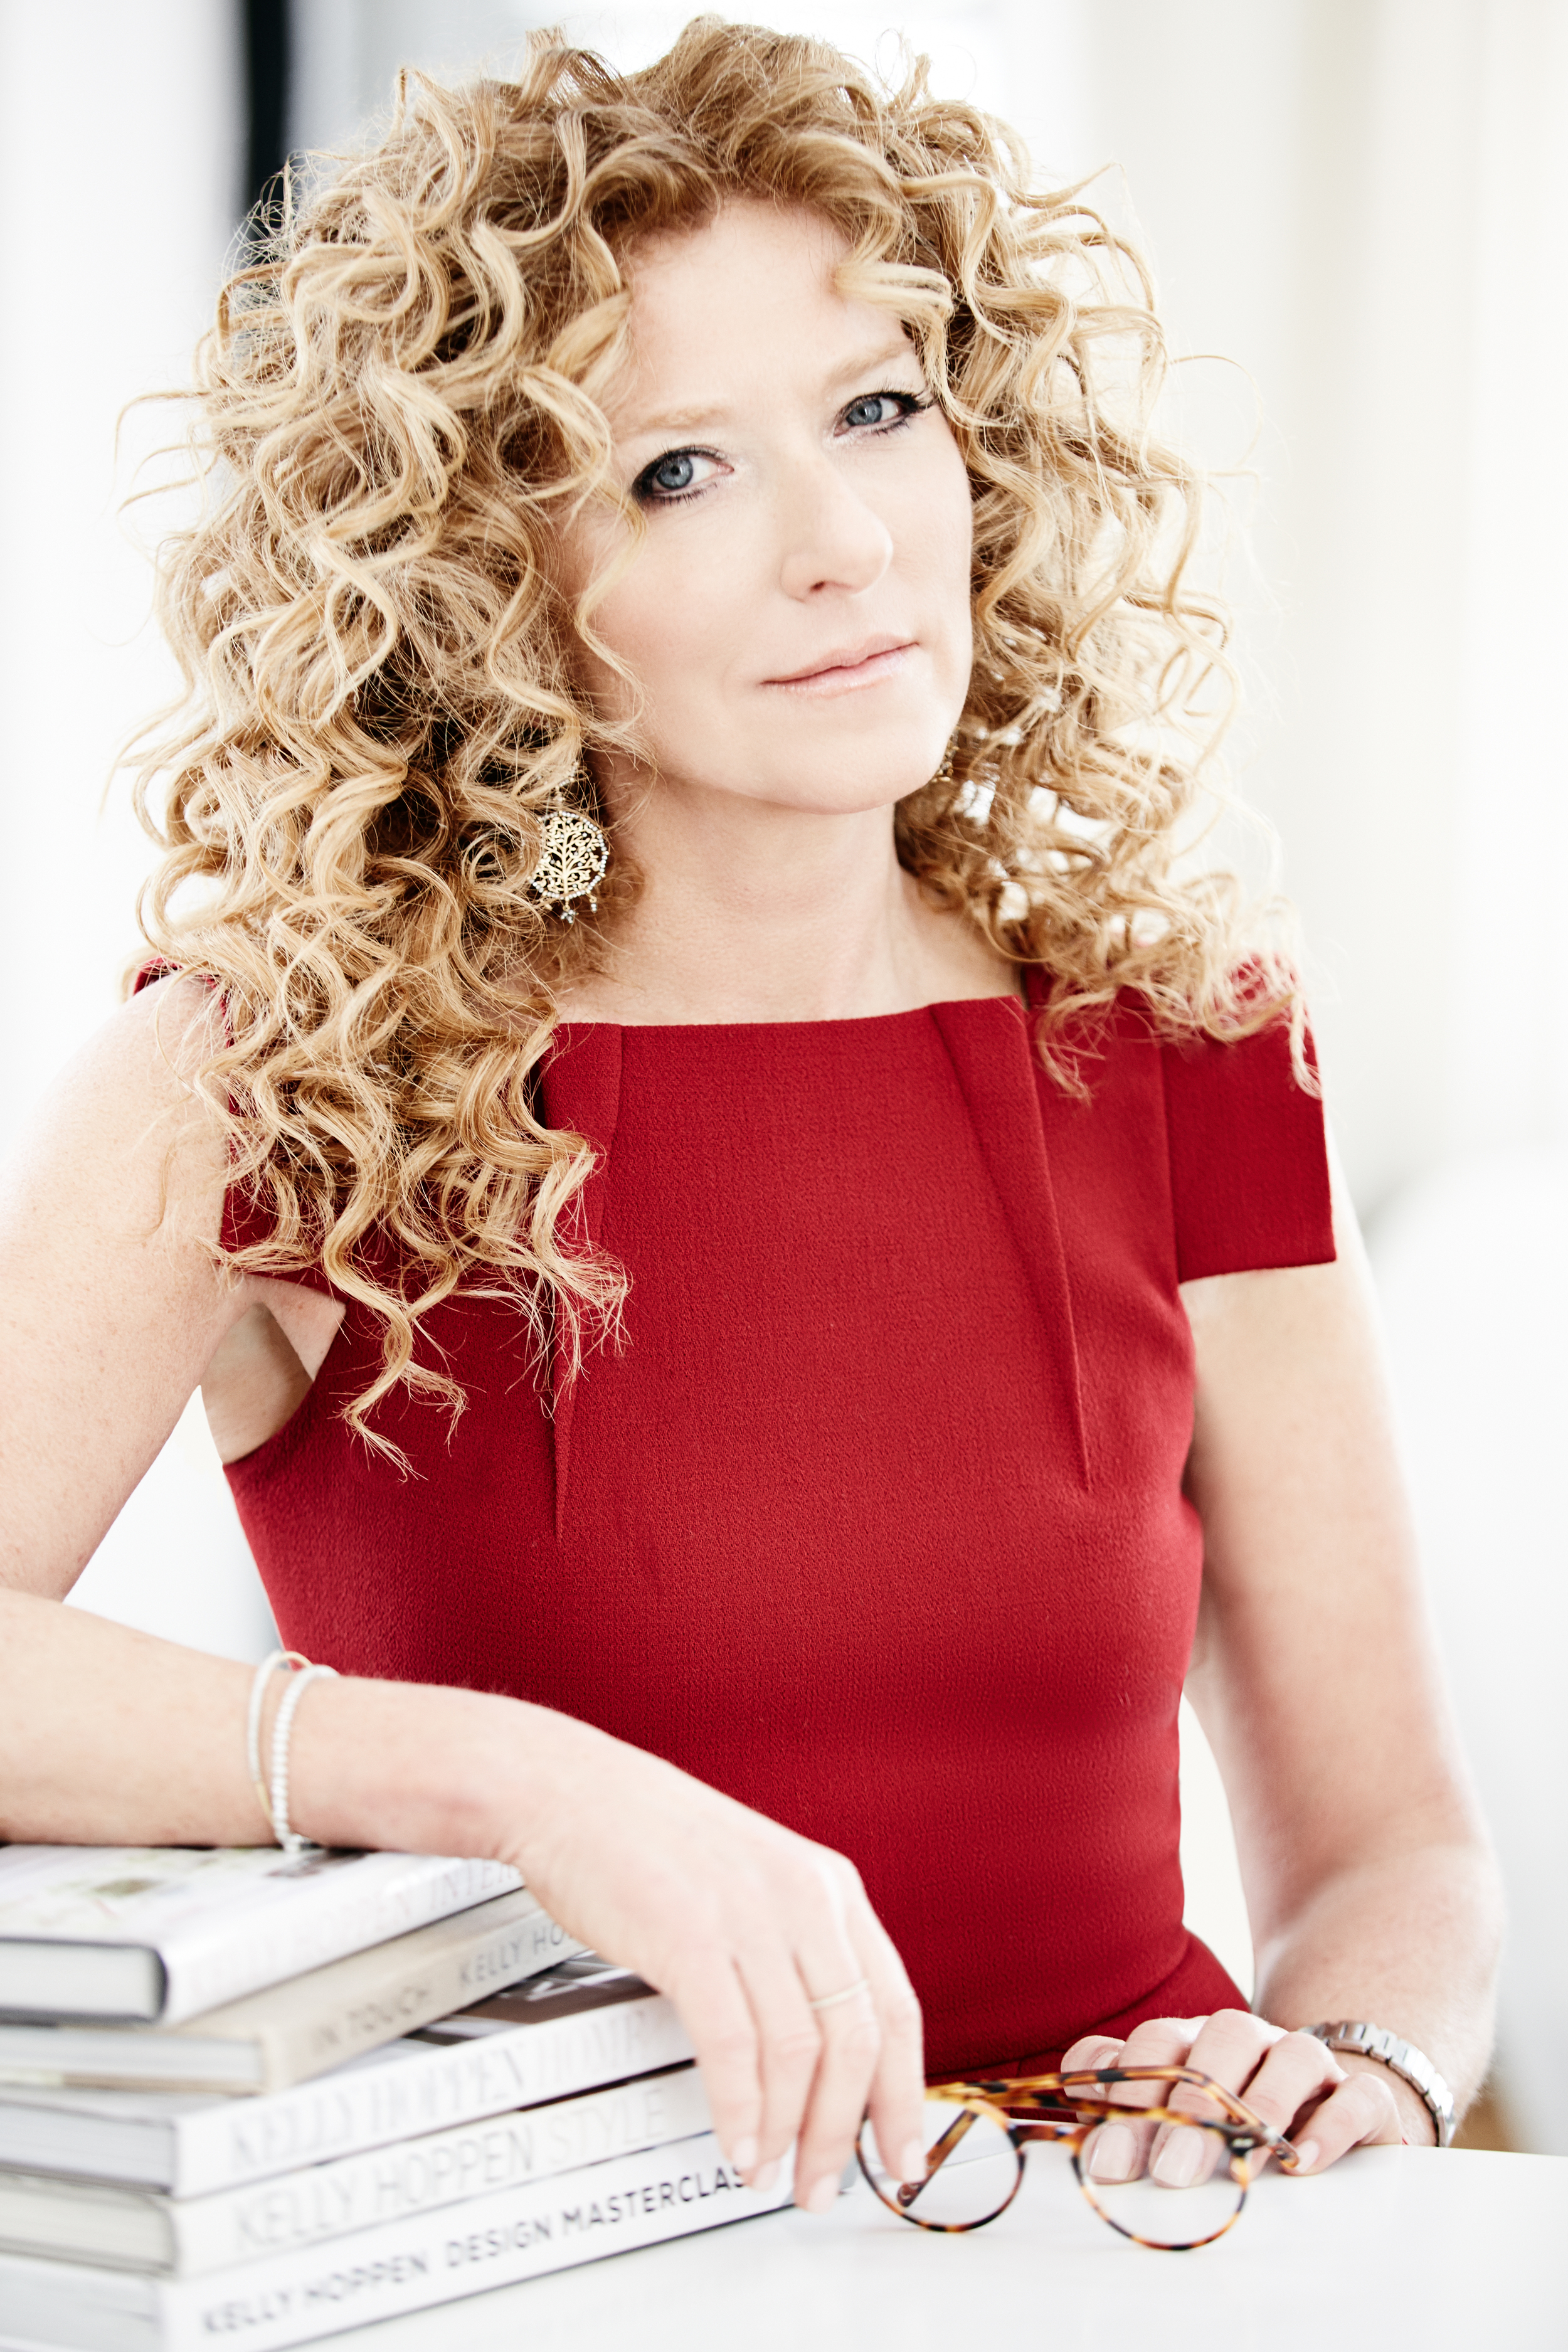 """Kelly Hoppen: """"Everyone focusses on a gender divide, but it's all about drive"""""""